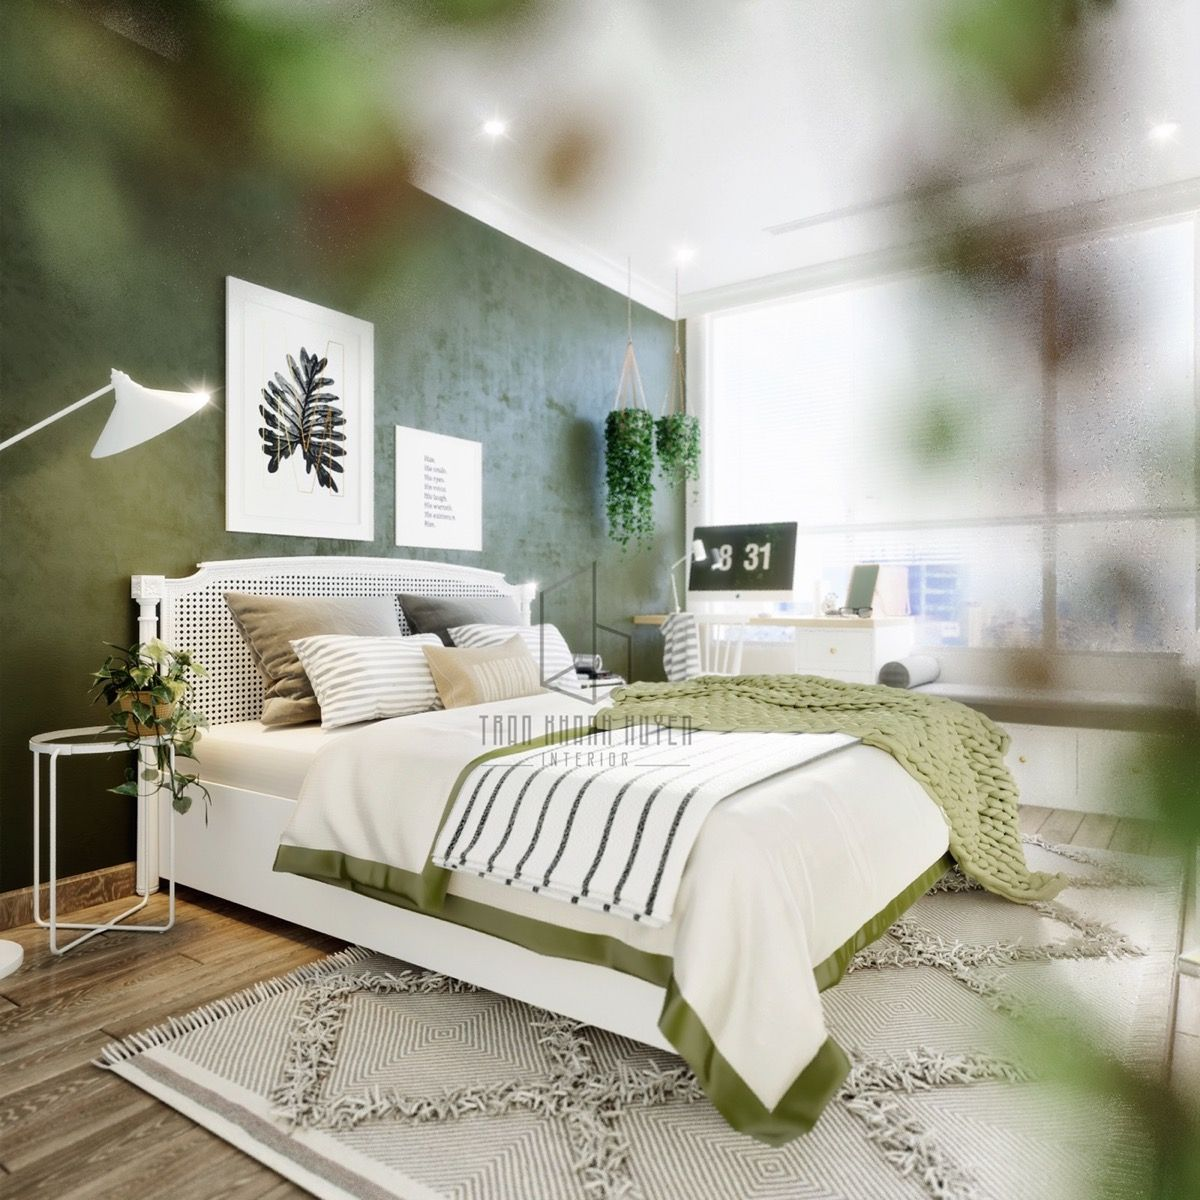 Home interior ideas for bedrooms  homes with a modern botanical vibe  home decor  modern and